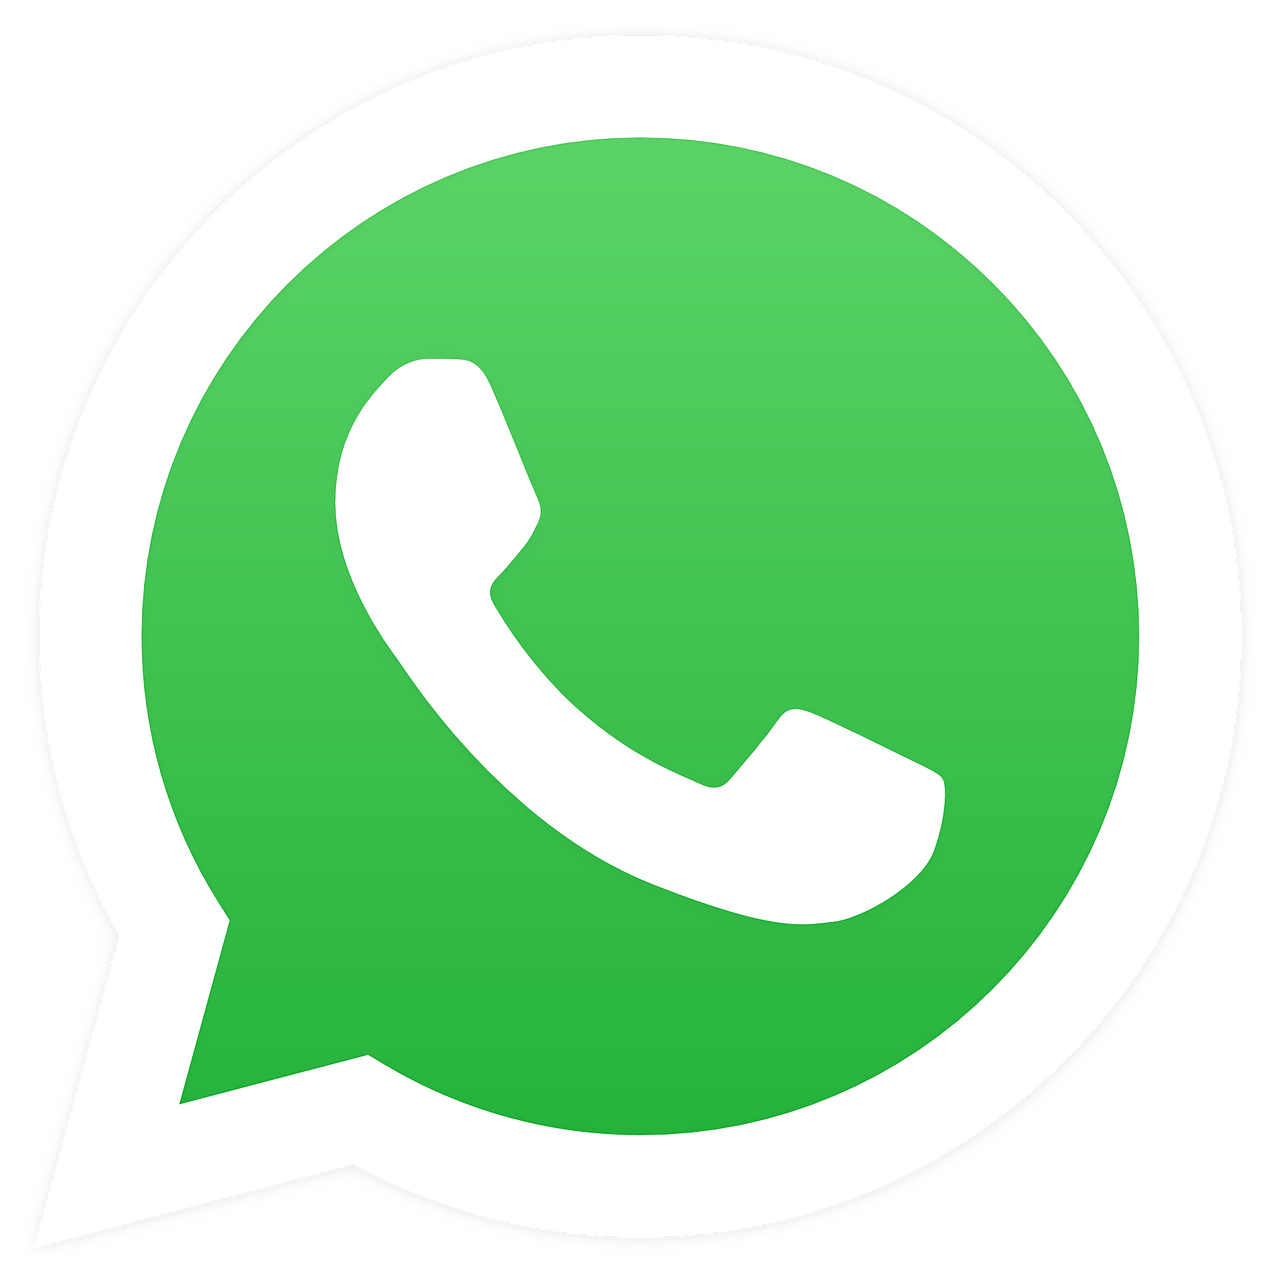 Whatsapp divorcio express